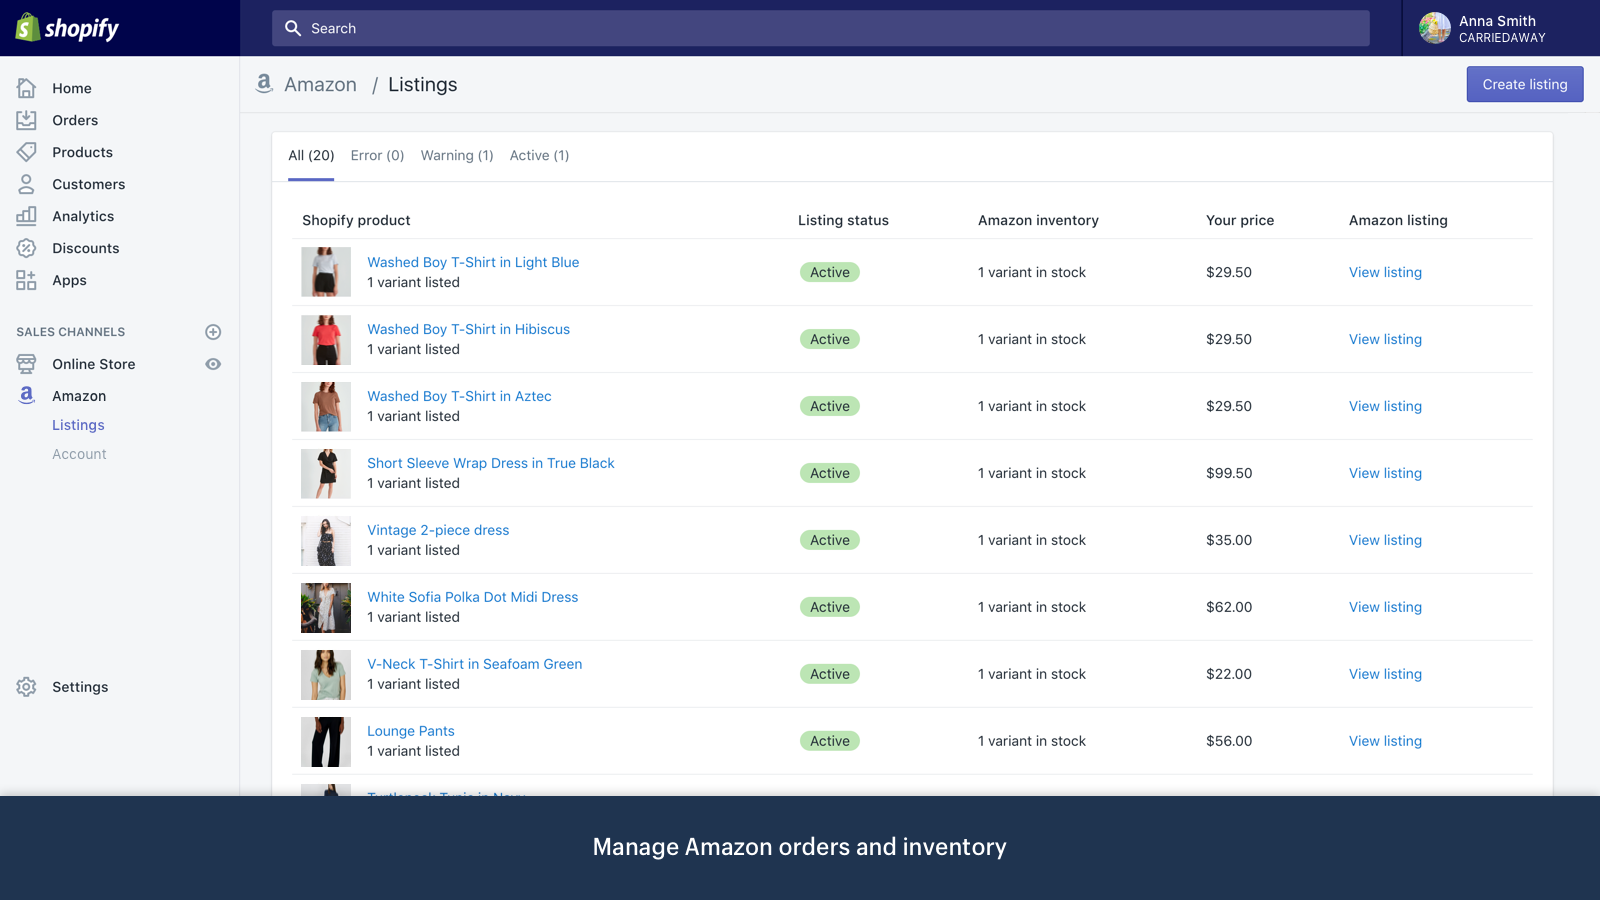 Manage Amazon orders and inventory